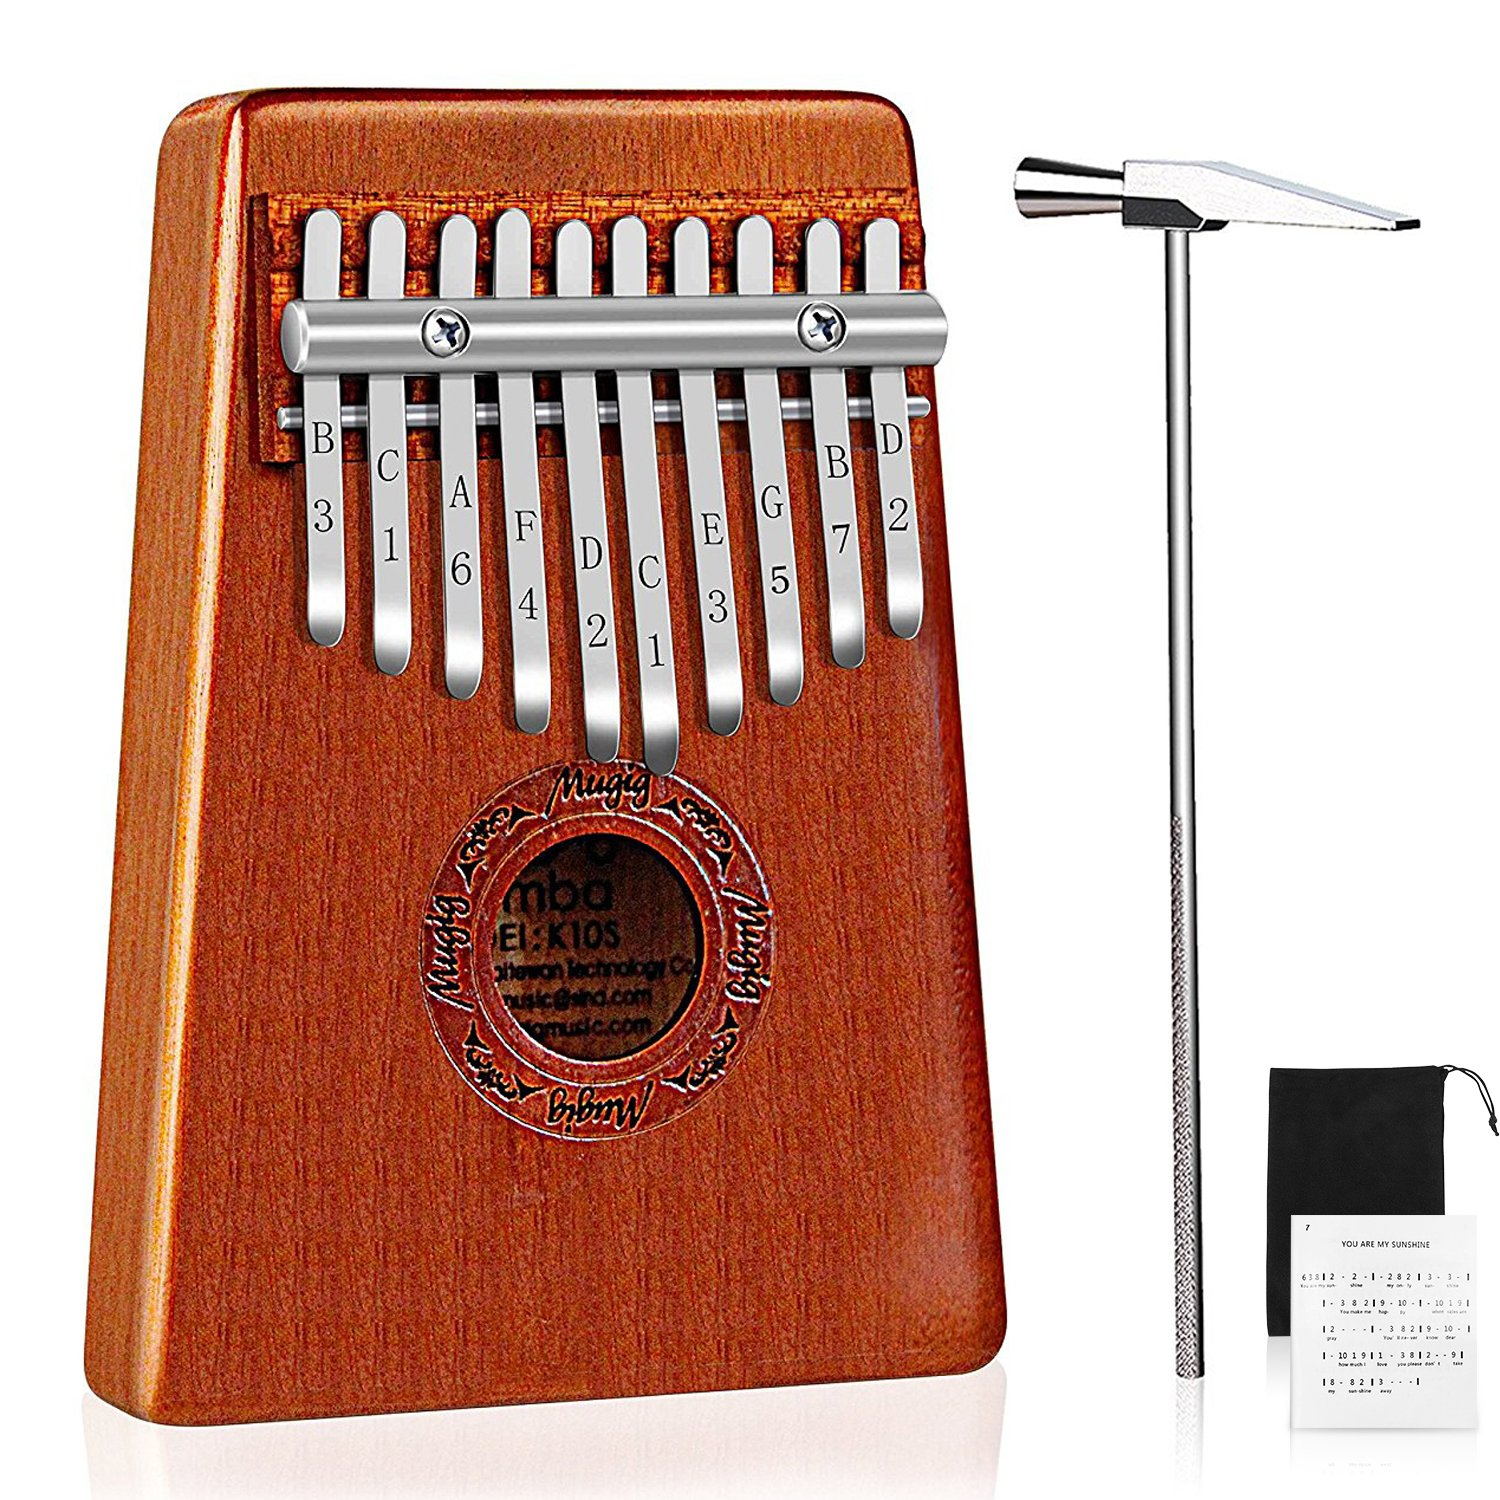 Mugig Kalimba Mbira Thumb Piano Pocket Size for Beginners and Children with Engraved Notation, Cloth Bag, Hammer and Music Book k10s